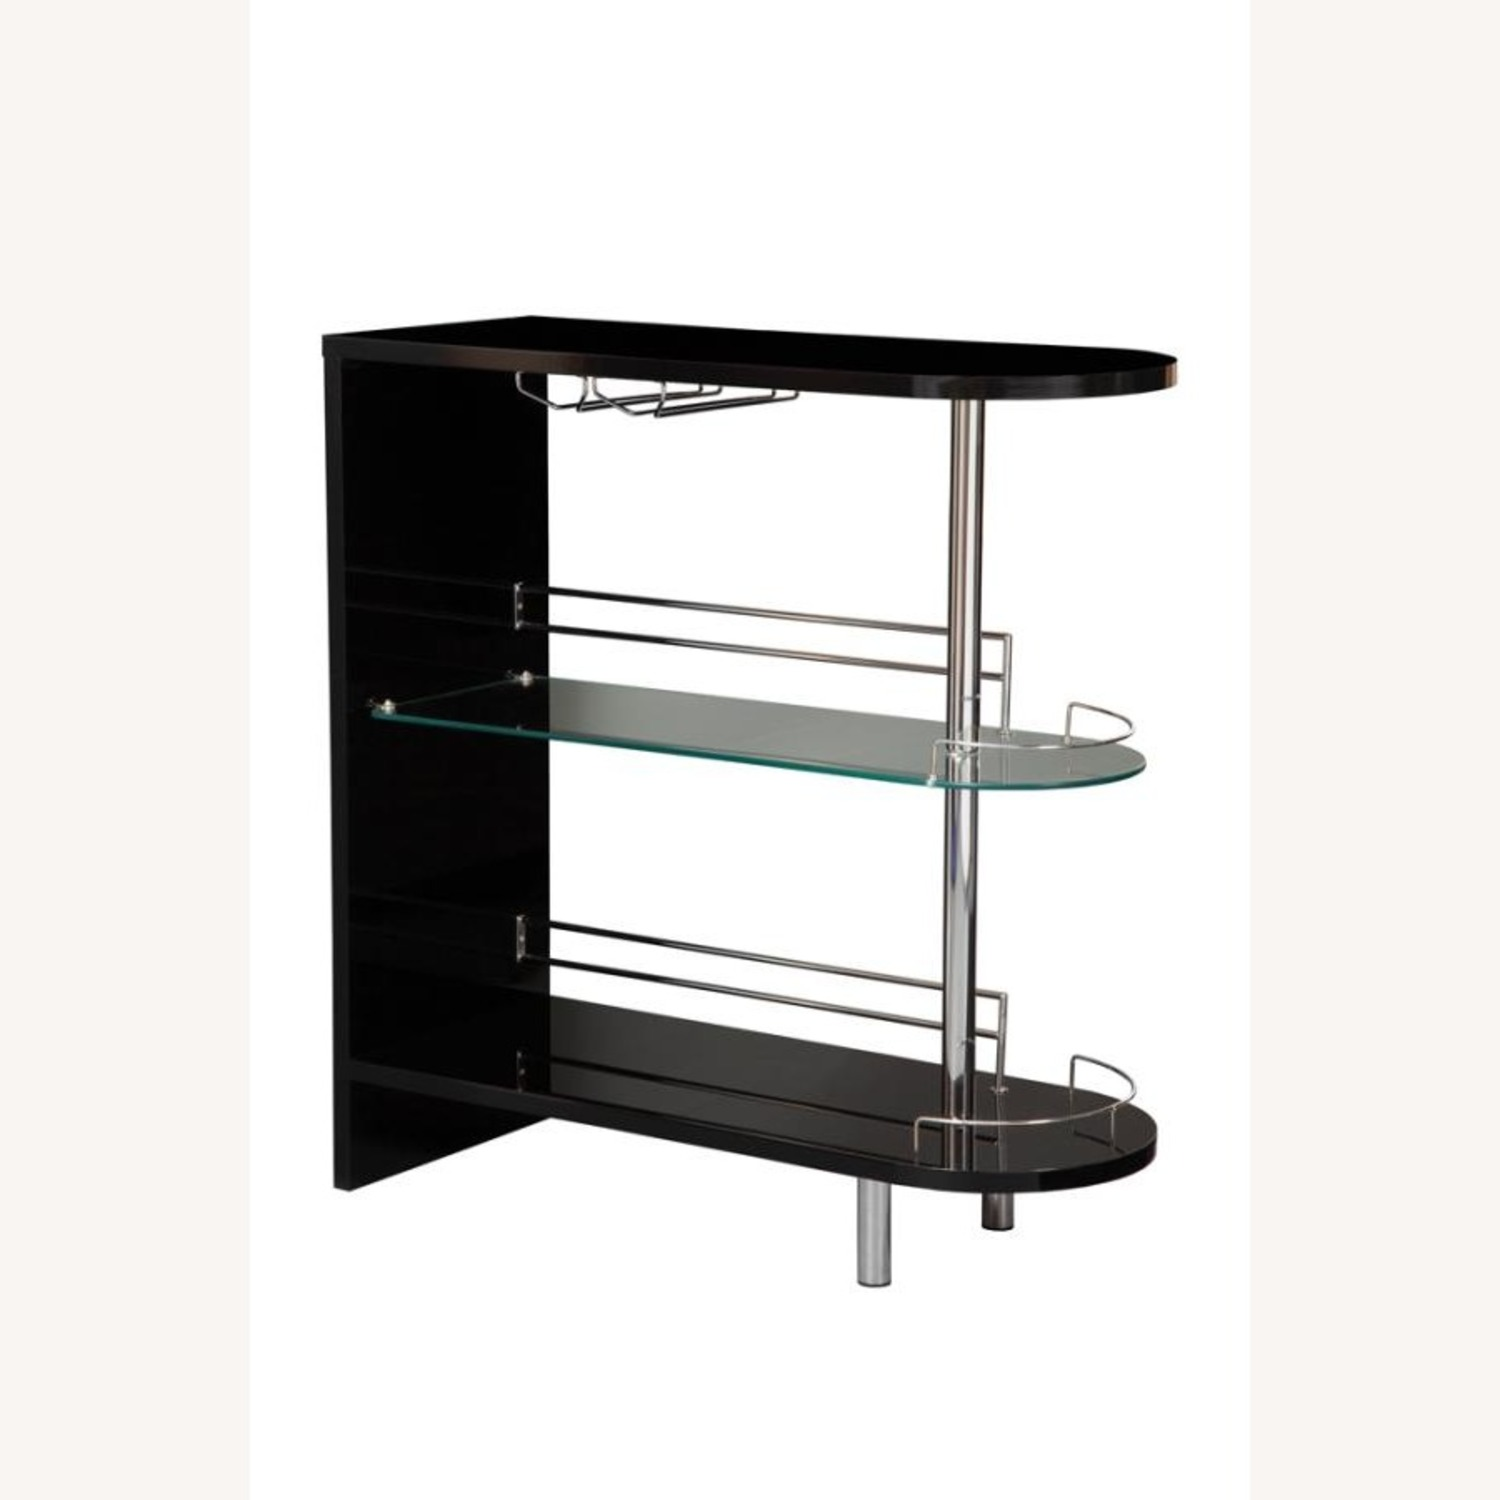 Bar Unit In Glossy Black W/ Rounded Ends - image-0